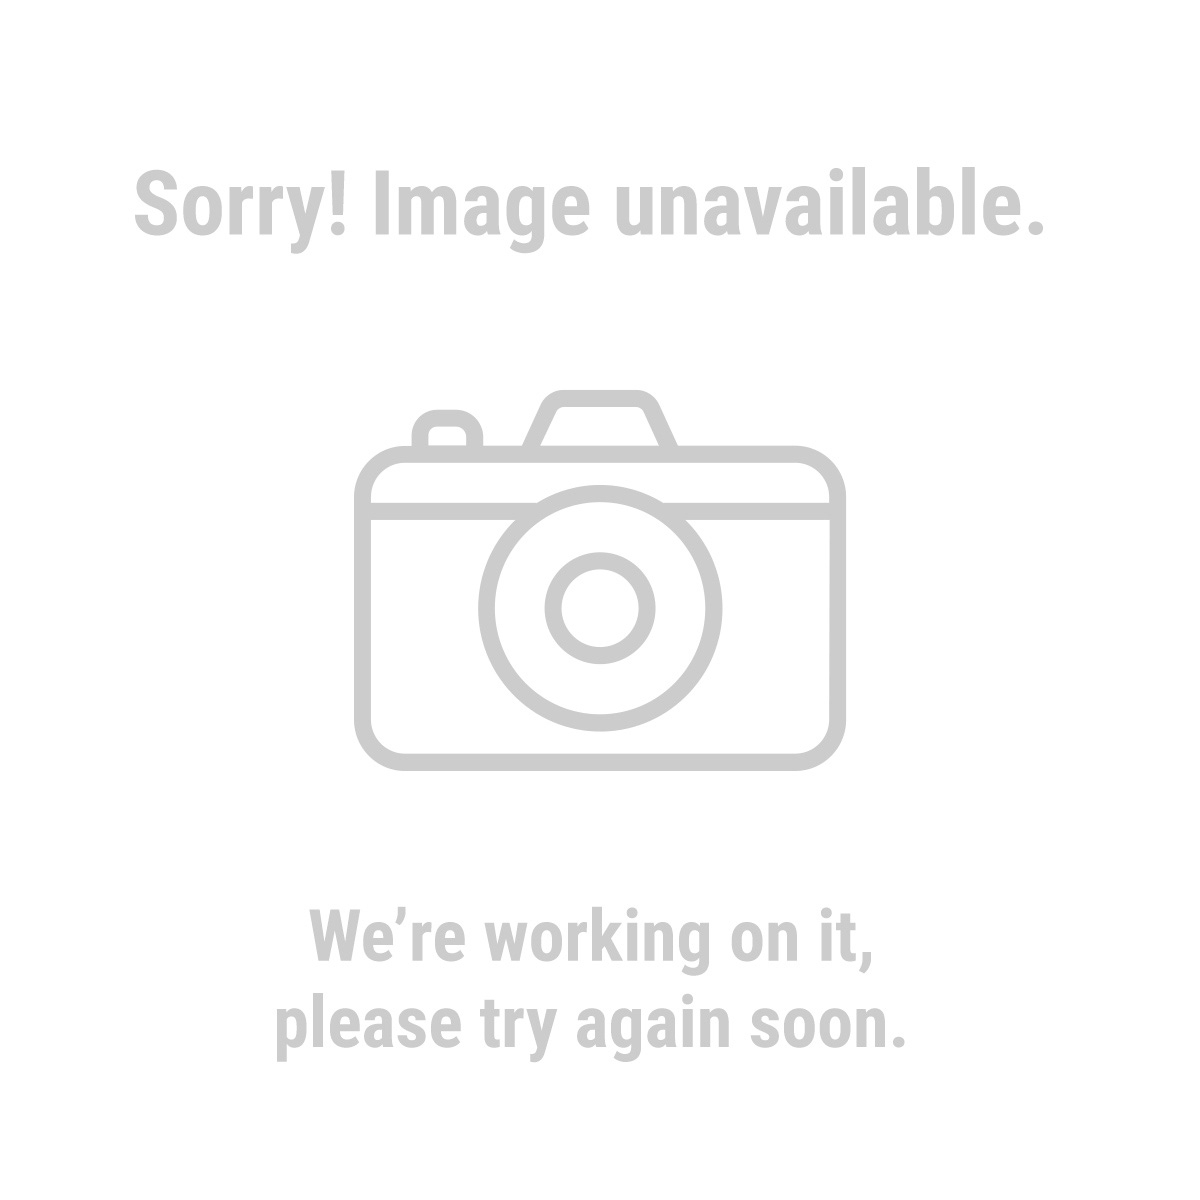 Lifetime Carbide® 90313 Pack of 6 Fine Grade Aluminum Oxide Sanding Sponges with Beveled Edge